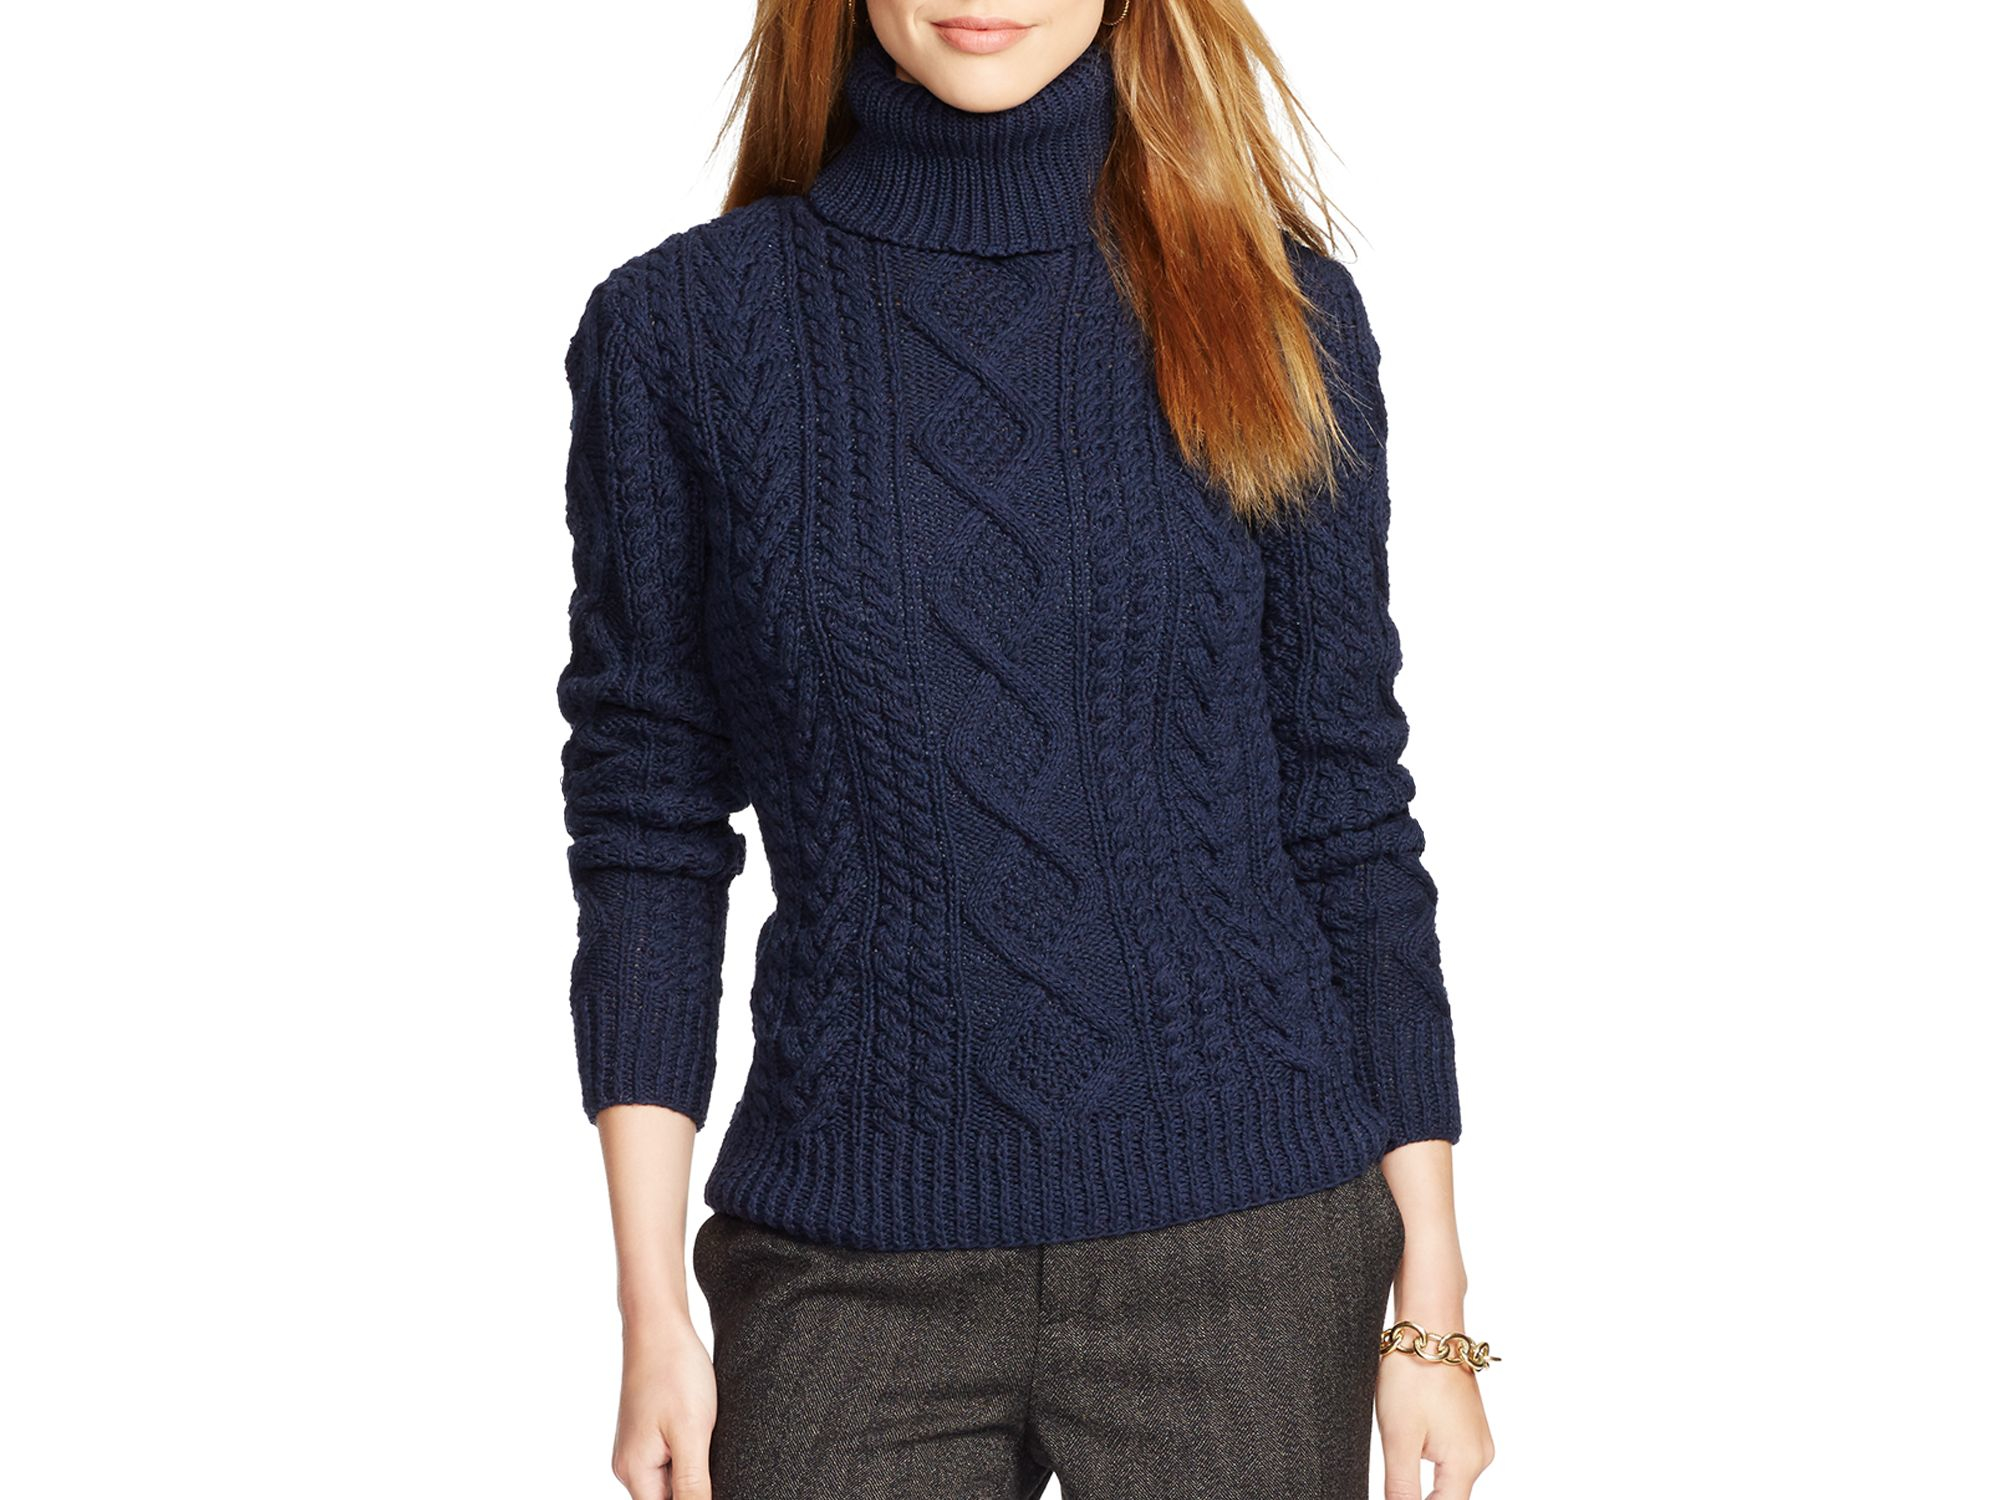 Knitting Patterns Womens Turtleneck Sweaters : Ralph lauren Lauren Cable Knit Turtleneck Sweater in Blue Lyst